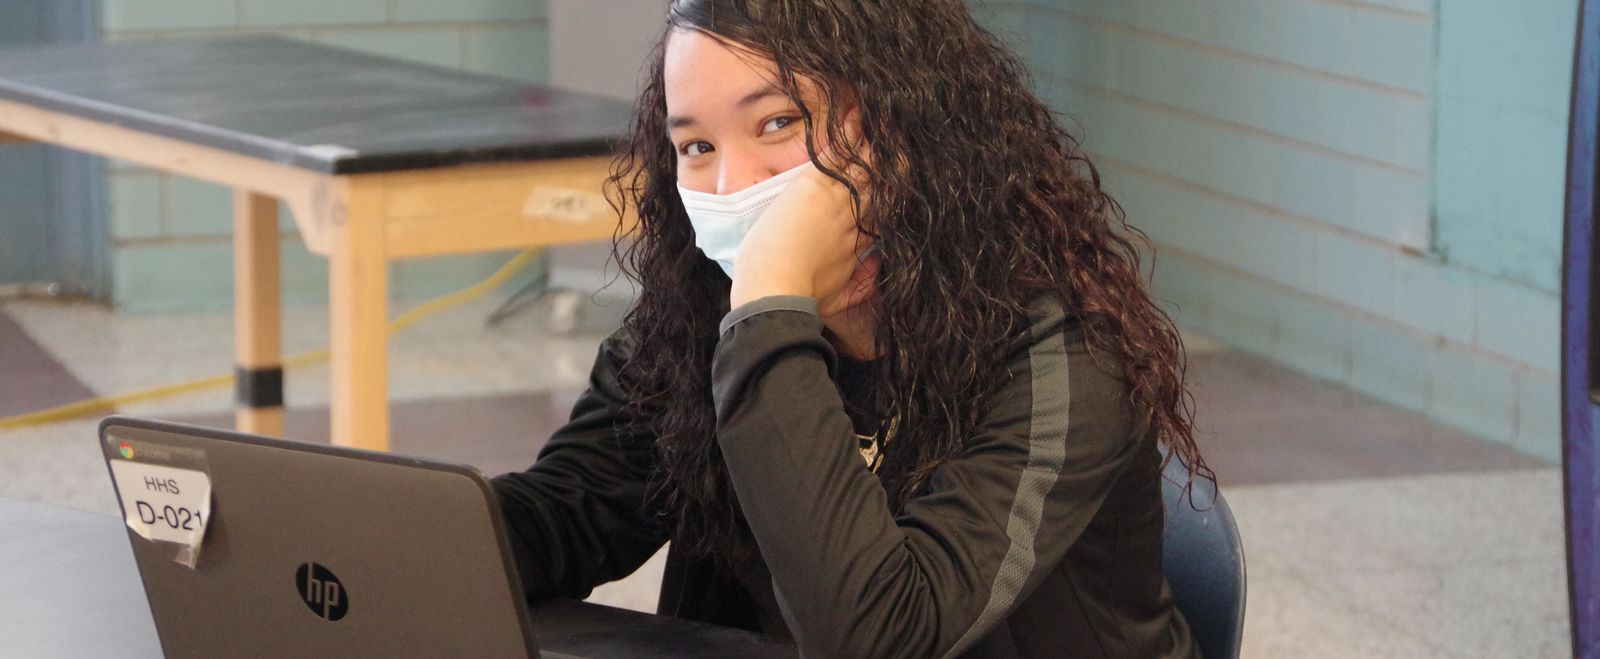 girl smiles at laptop in a high school cafeteria